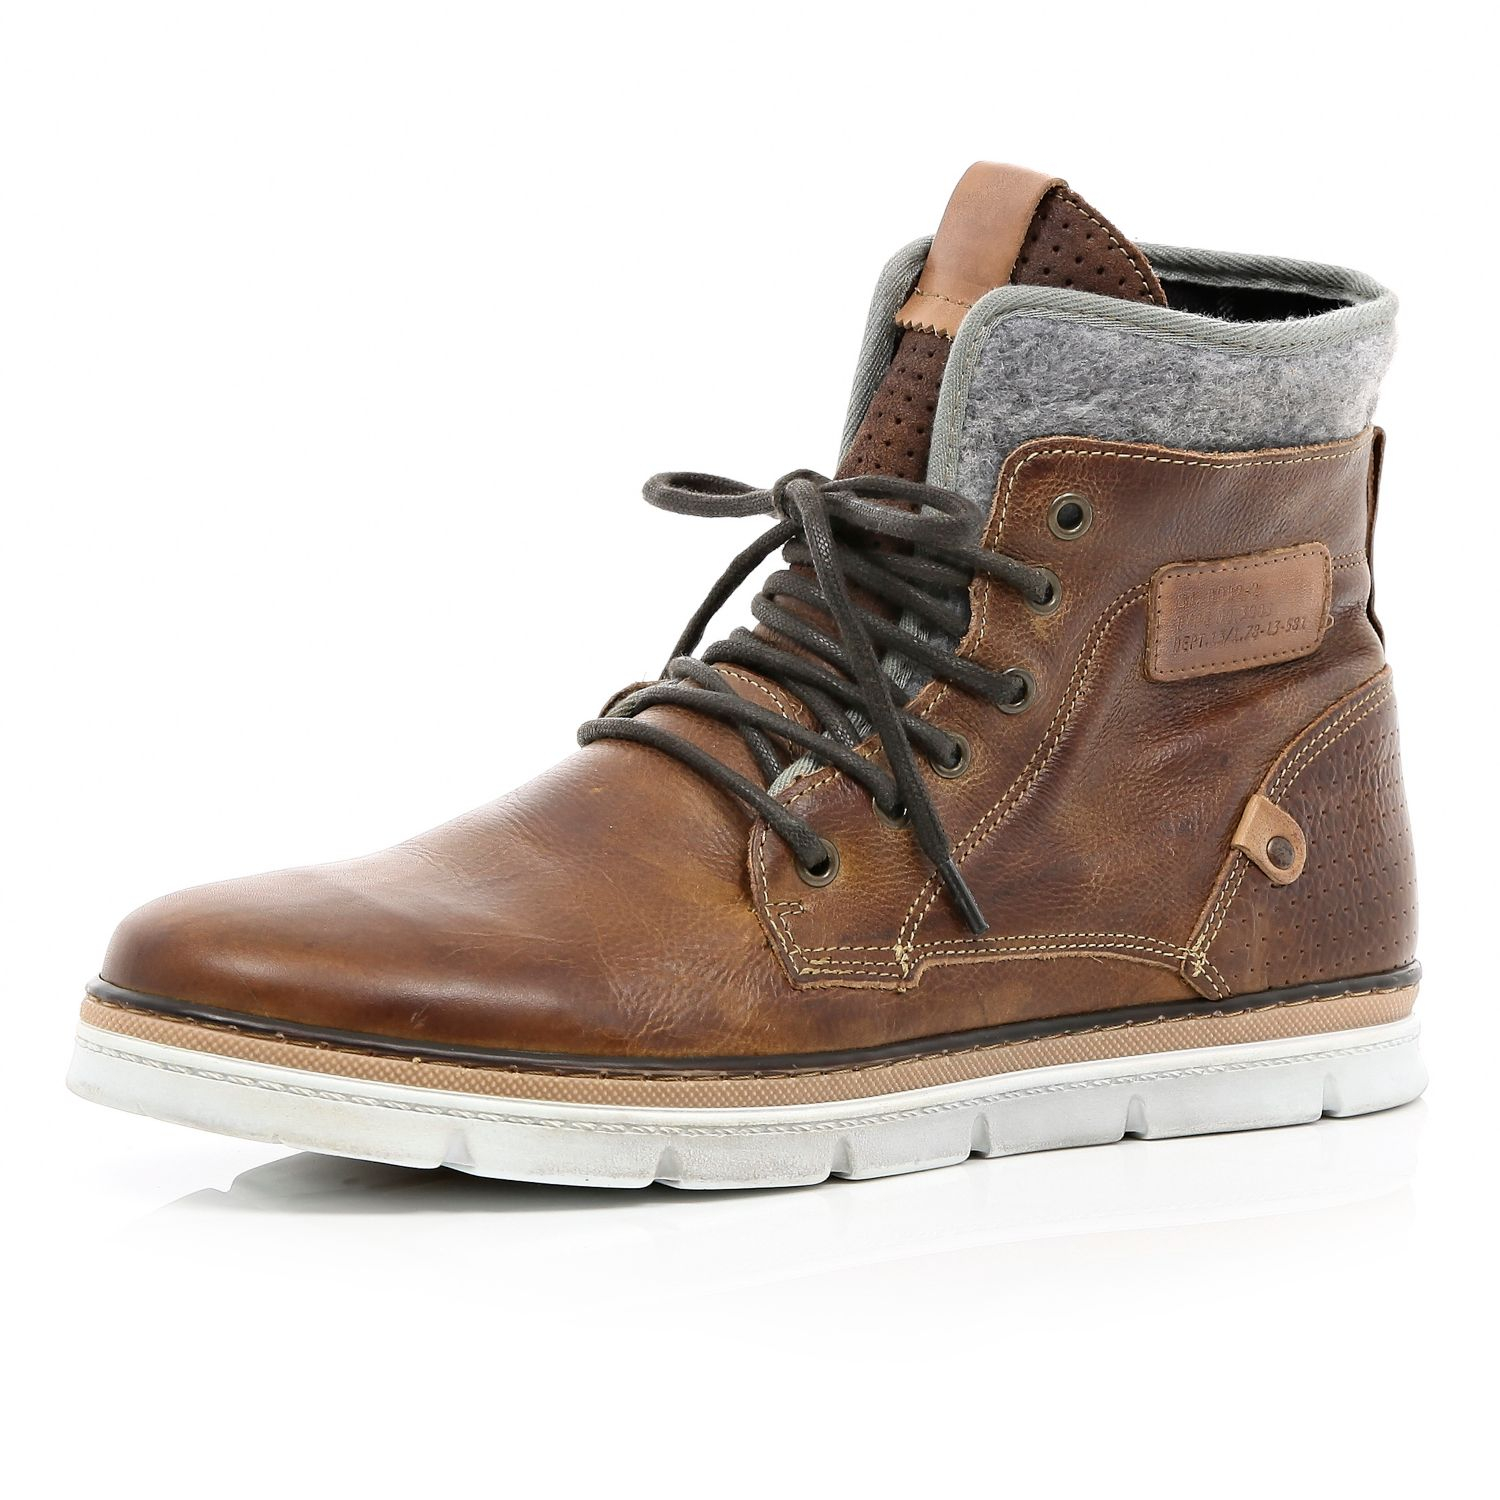 Macys Guess Shoes Men